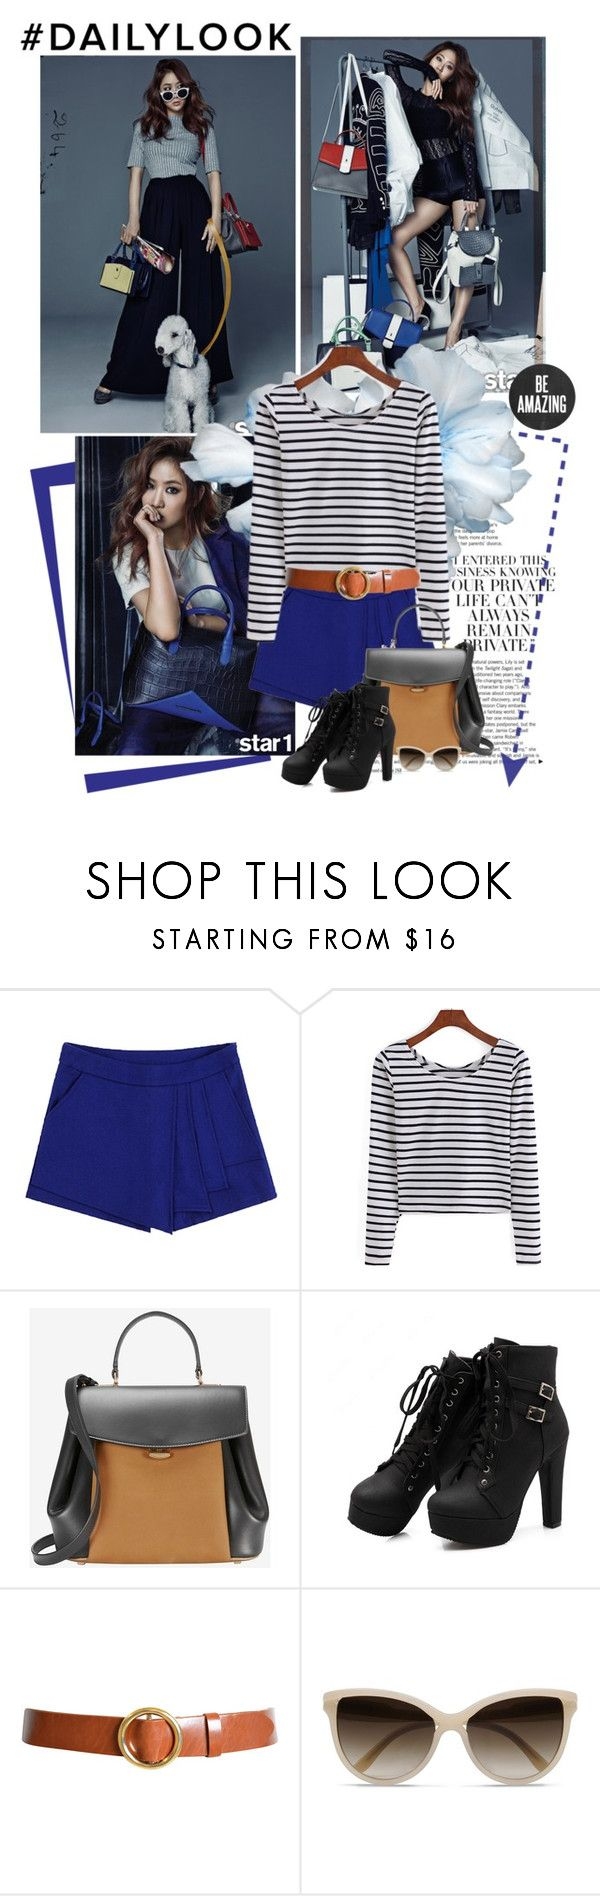 """1132. Soyu"" by oh-pororo ❤ liked on Polyvore featuring Retrò, Nina Ricci, Frame Denim, STELLA McCARTNEY, Dailylook, sistar, soyu, star1magazine and koreamagazineeditorial"